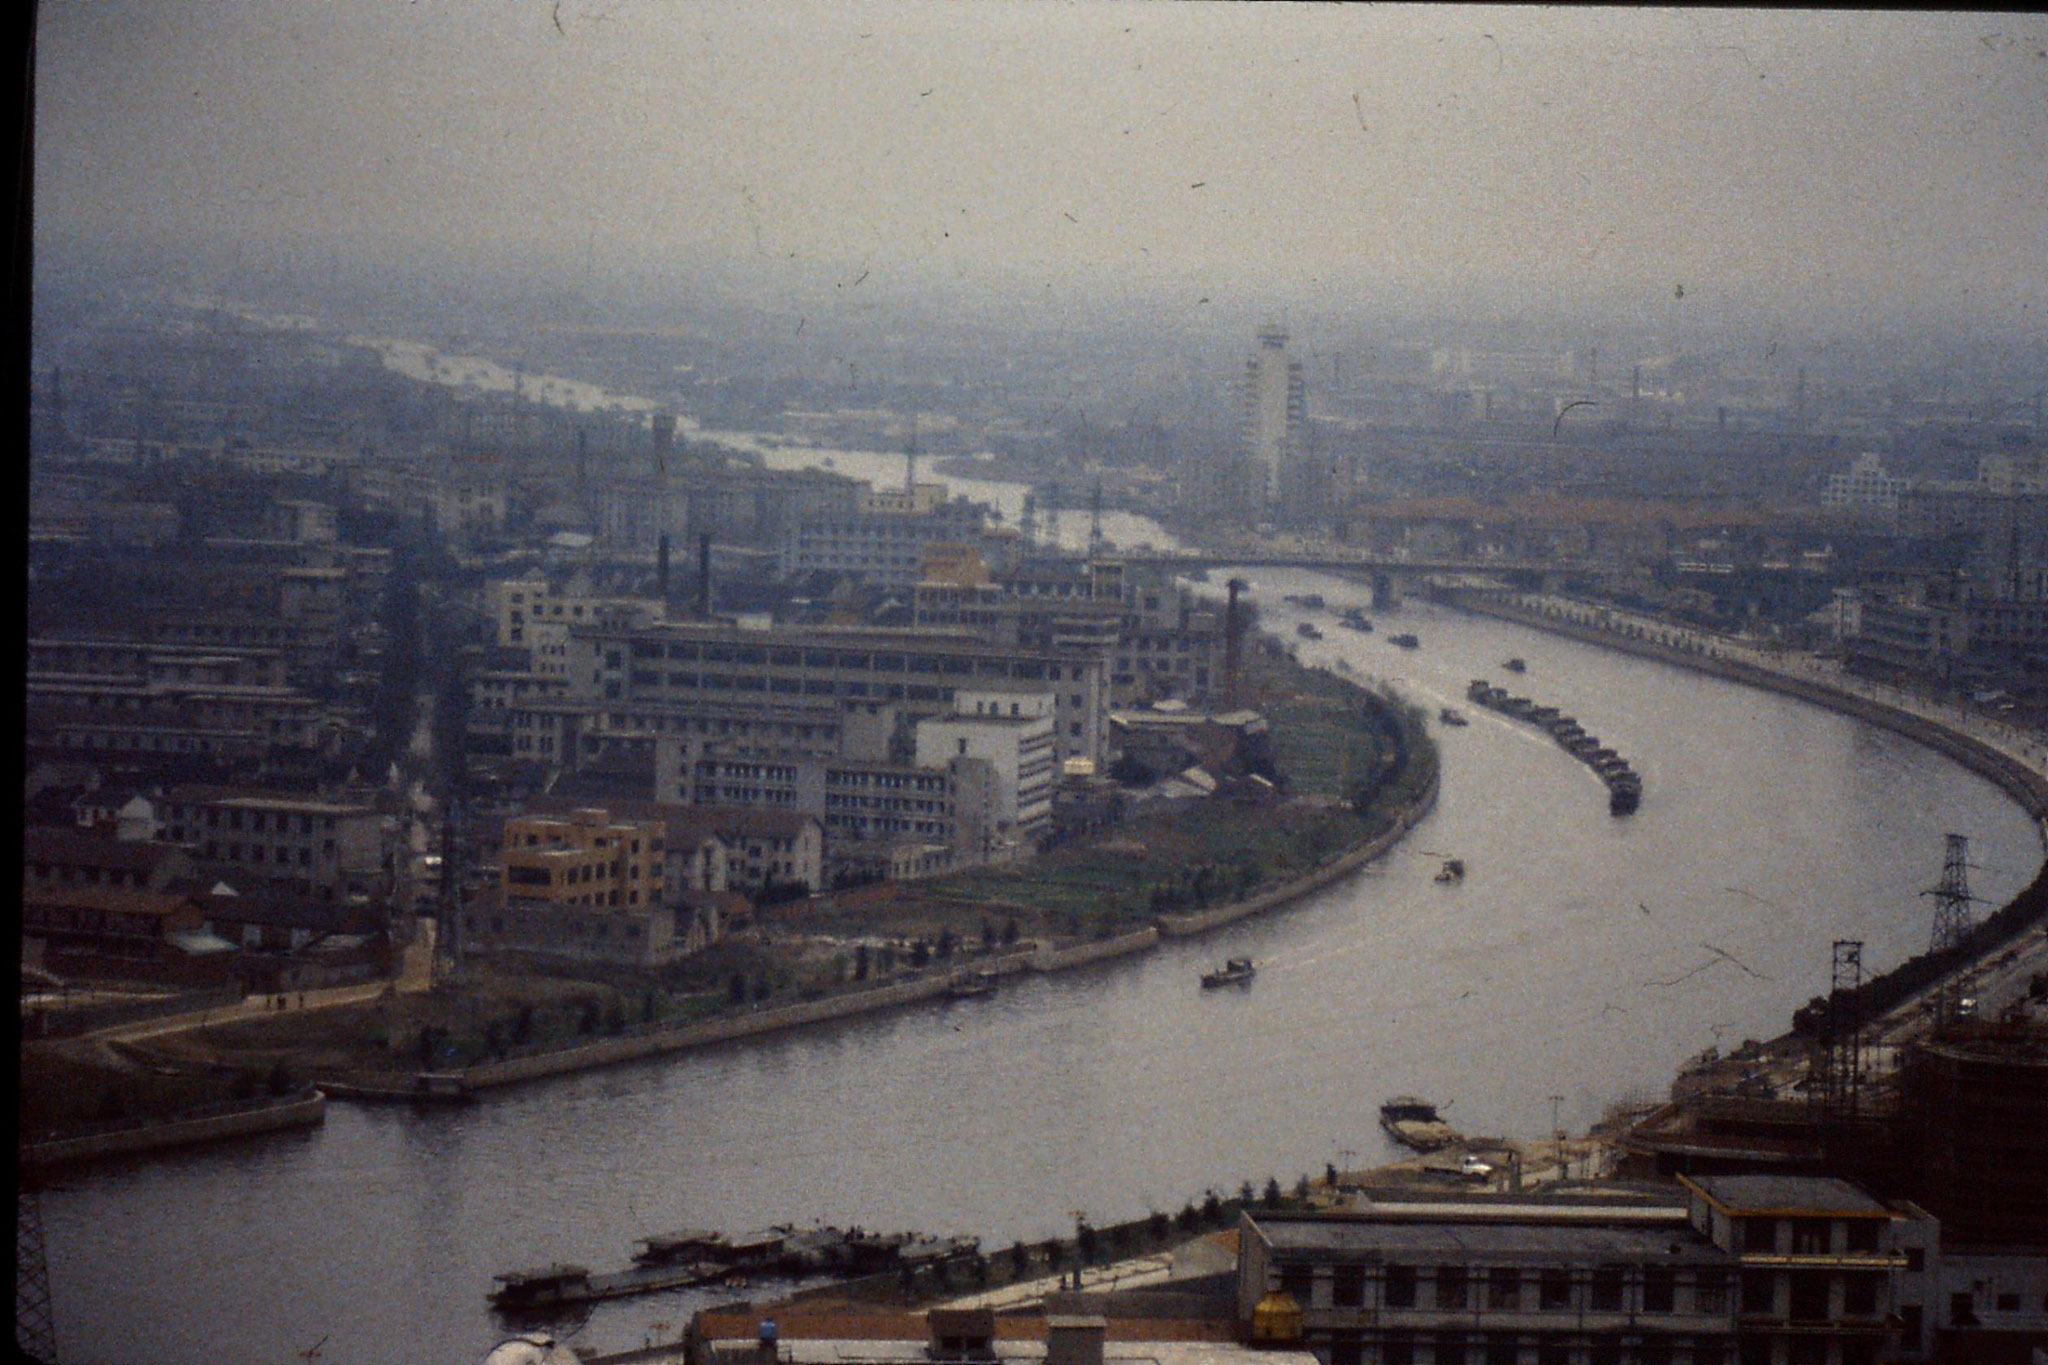 20/3/1989: 23: Wuxi Grand Canal from pagoda